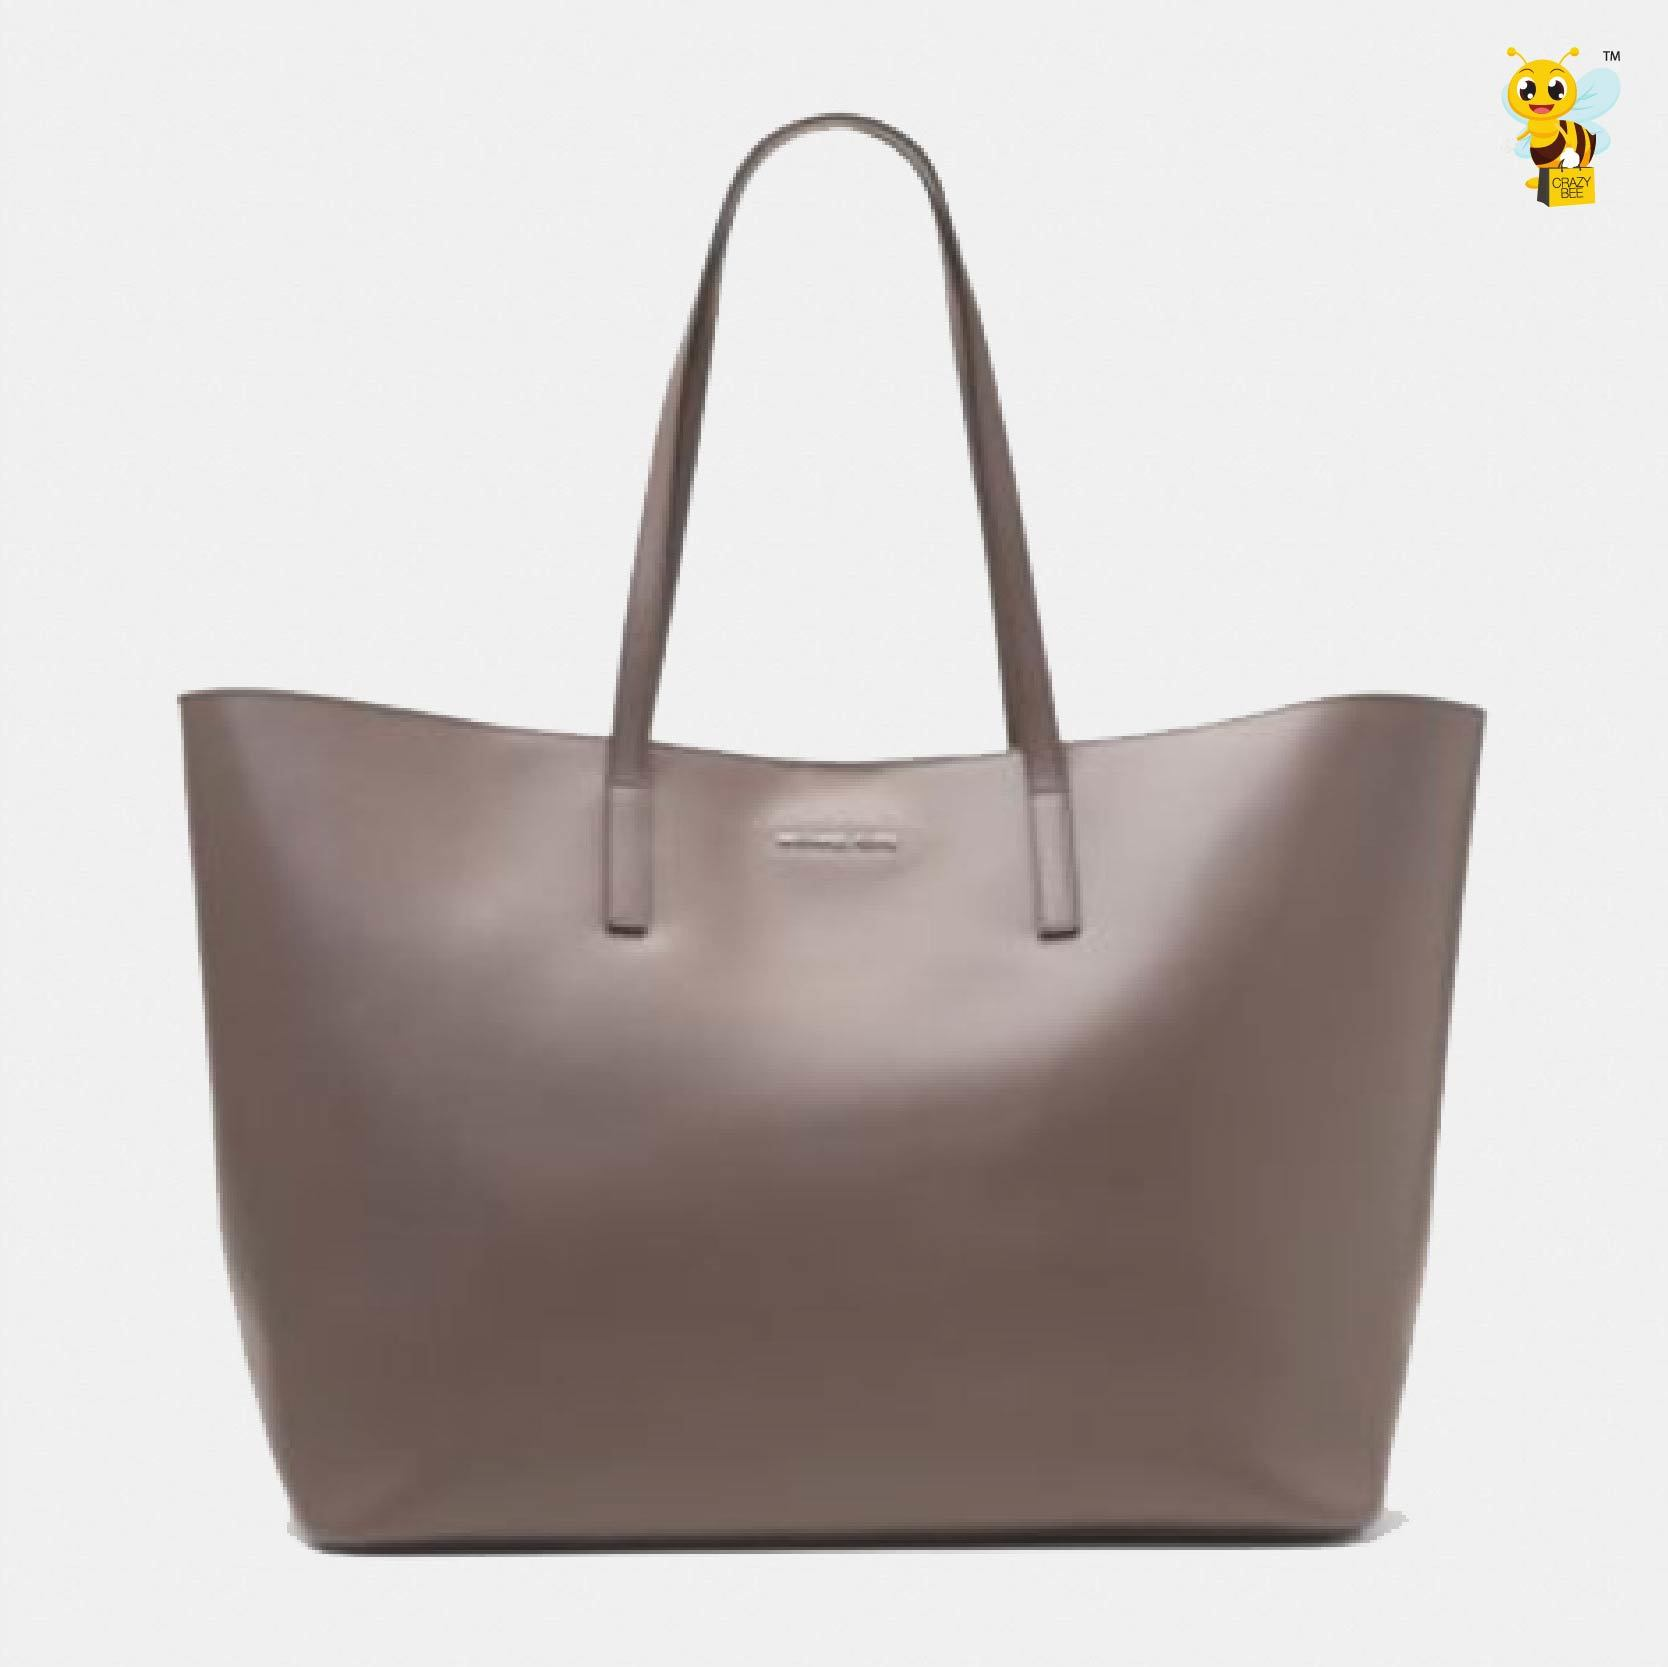 b490d7007382 MICHAEL KORS Emry Extra-Large Leather Tote (Cinder) – CrazyBee